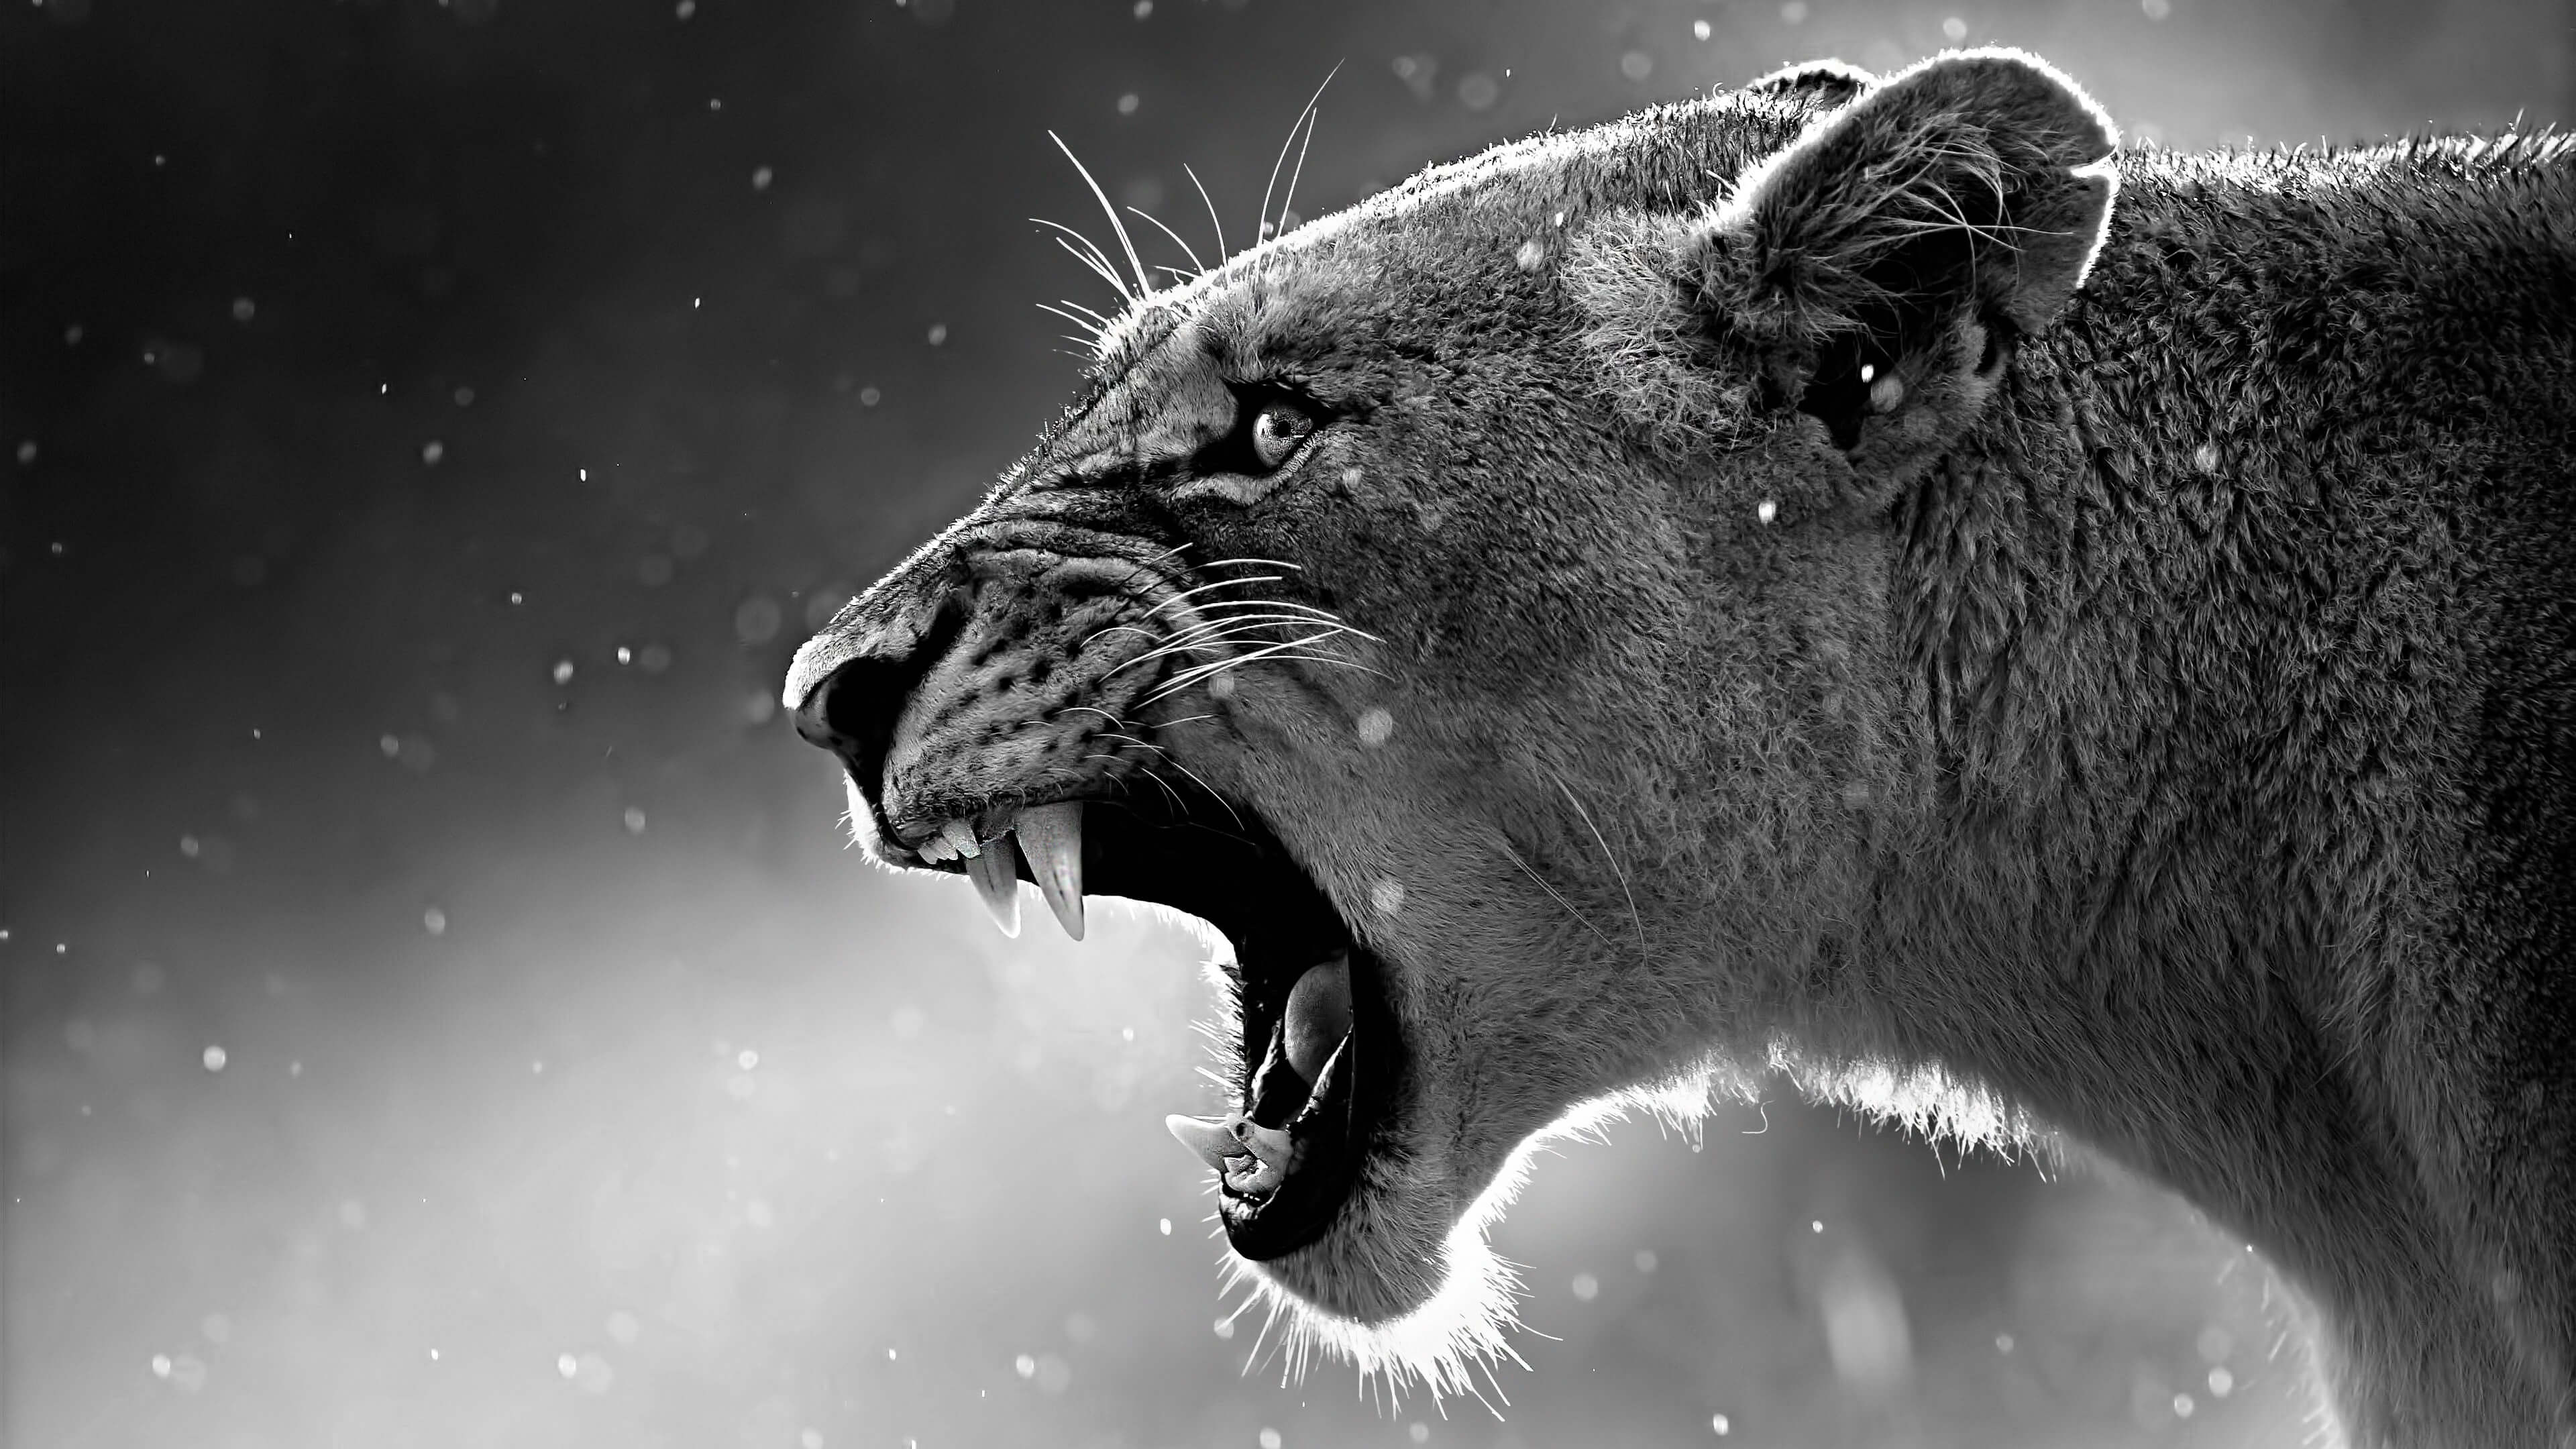 4k Resolution Wallpapers Lion